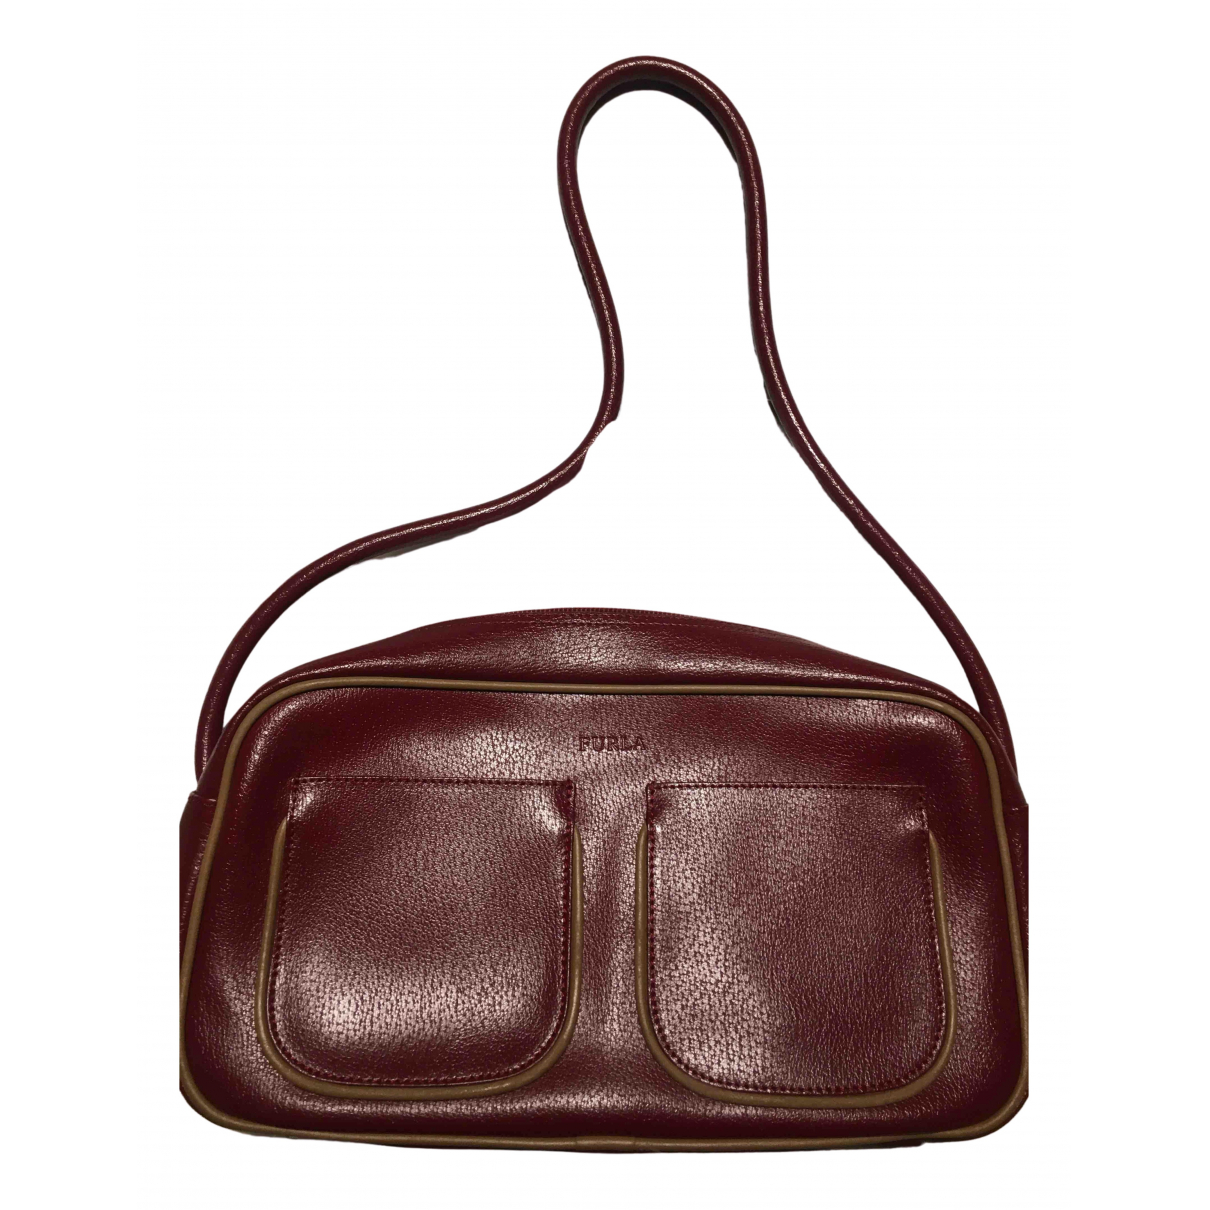 Furla \N Burgundy Leather handbag for Women \N